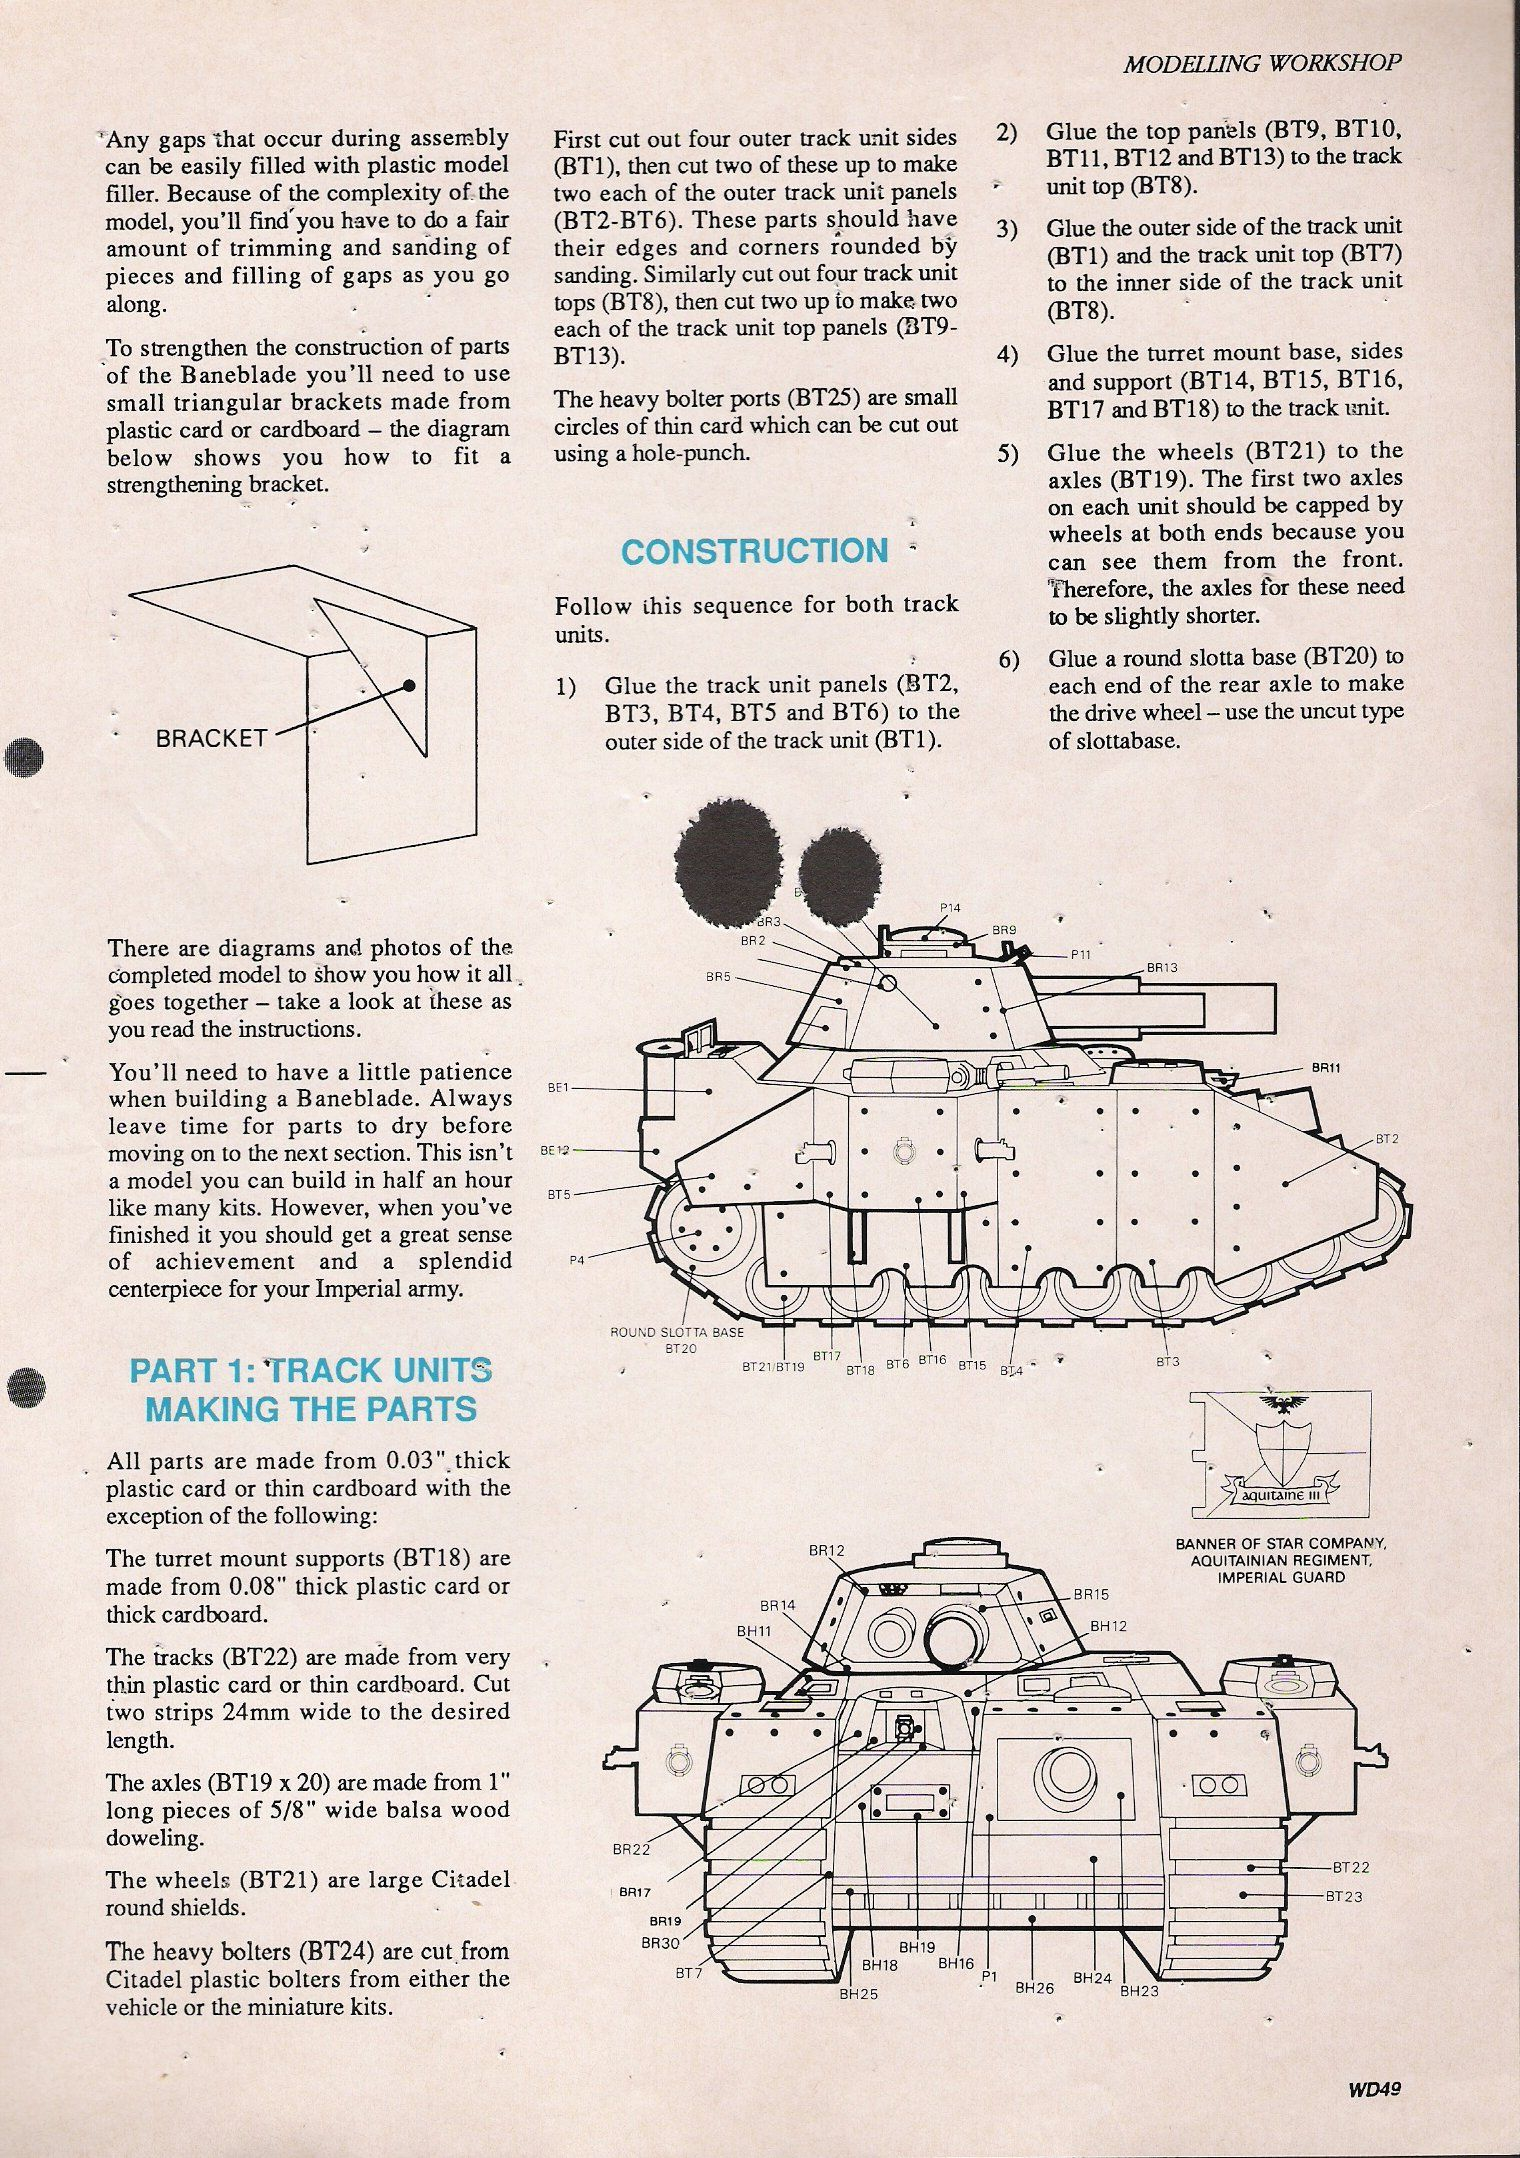 ba8ee510e1fab5bb4332572f91d2c399 Great Description About atlas Recovery Tank with Inspiring Images Cars Review